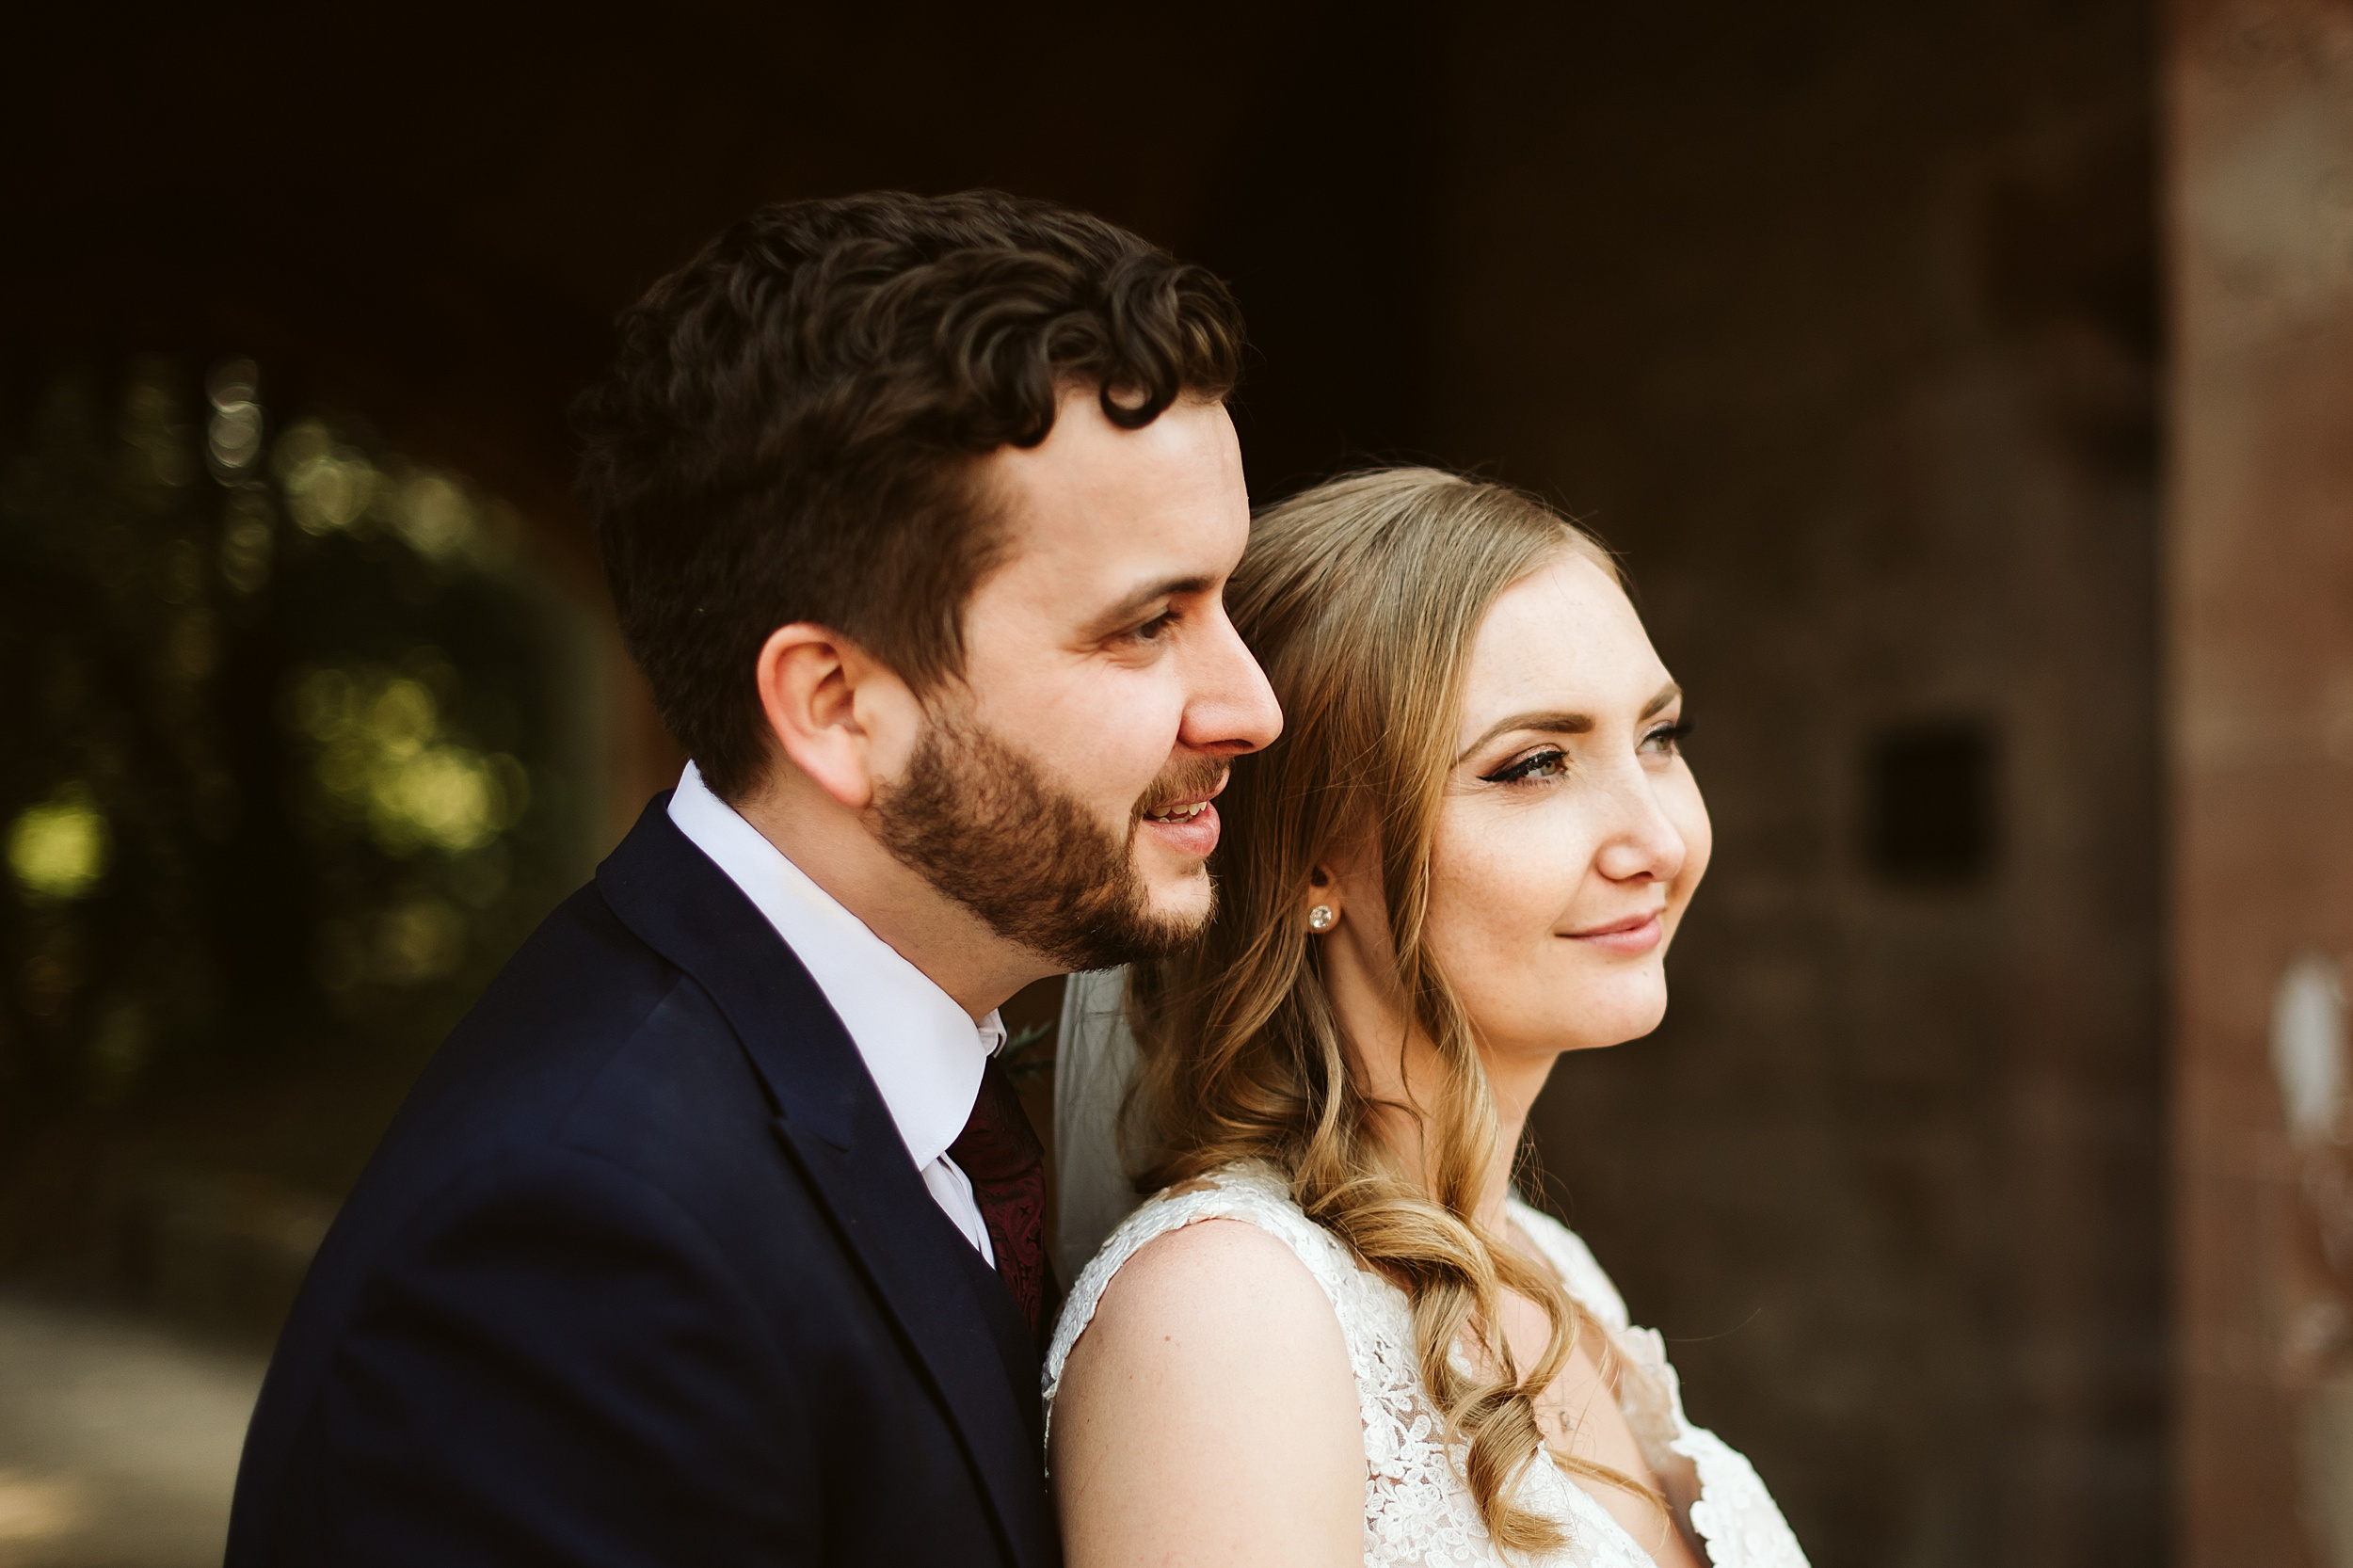 Peckforton_Castle_Cheshire_Toronto_Wedding_Photographer_UK_Destination_Wedding_0105.jpg